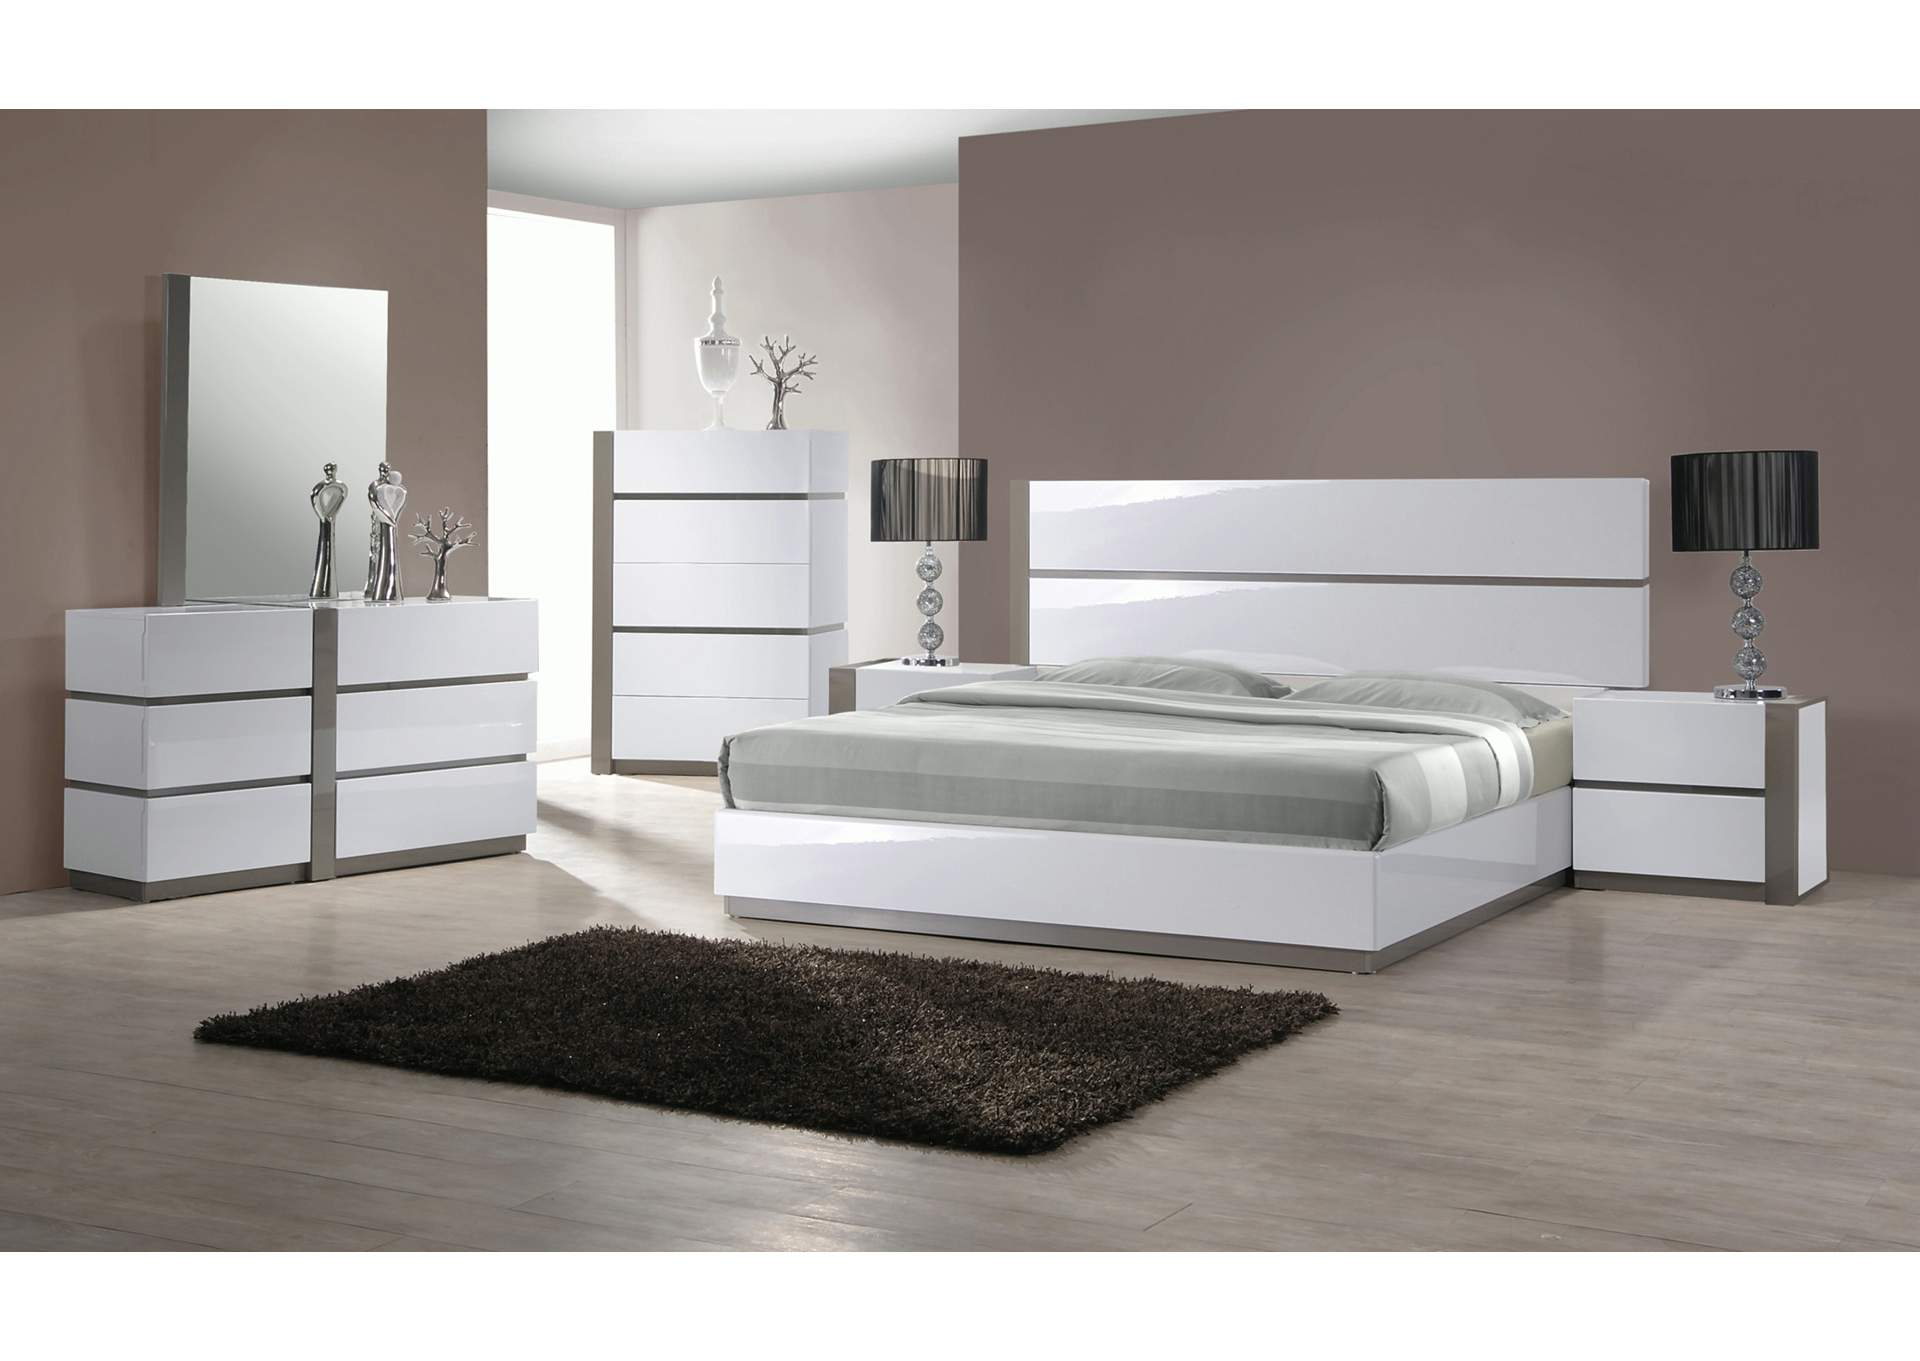 Manila Gloss White & Grey Panel King 4 Piece Bedroom Set W/ Nightstand, Dresser & Mirror,Chintaly Imports